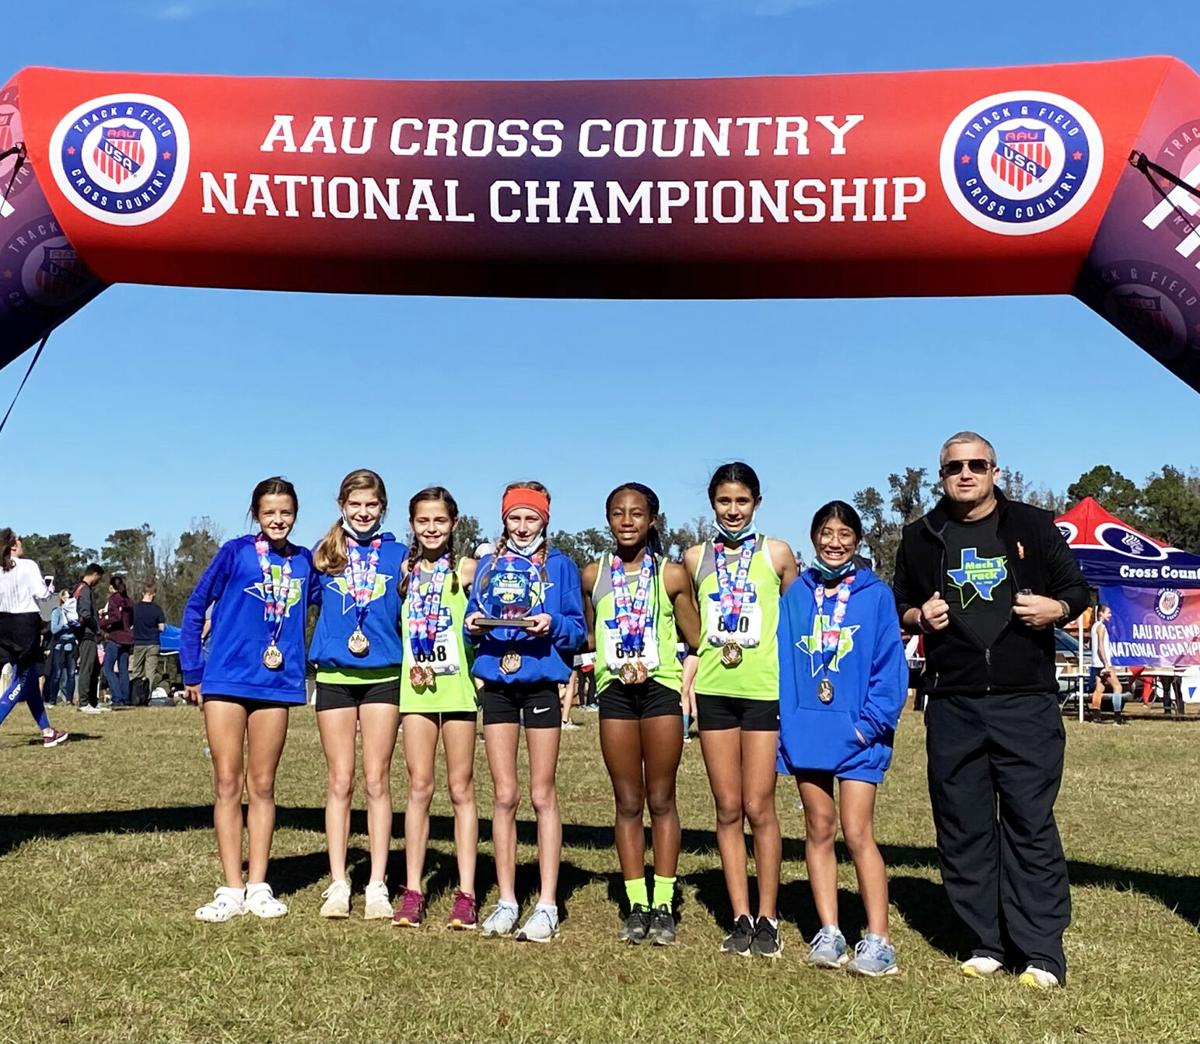 National Champions 3K - 11-12 Year Old Girls Division